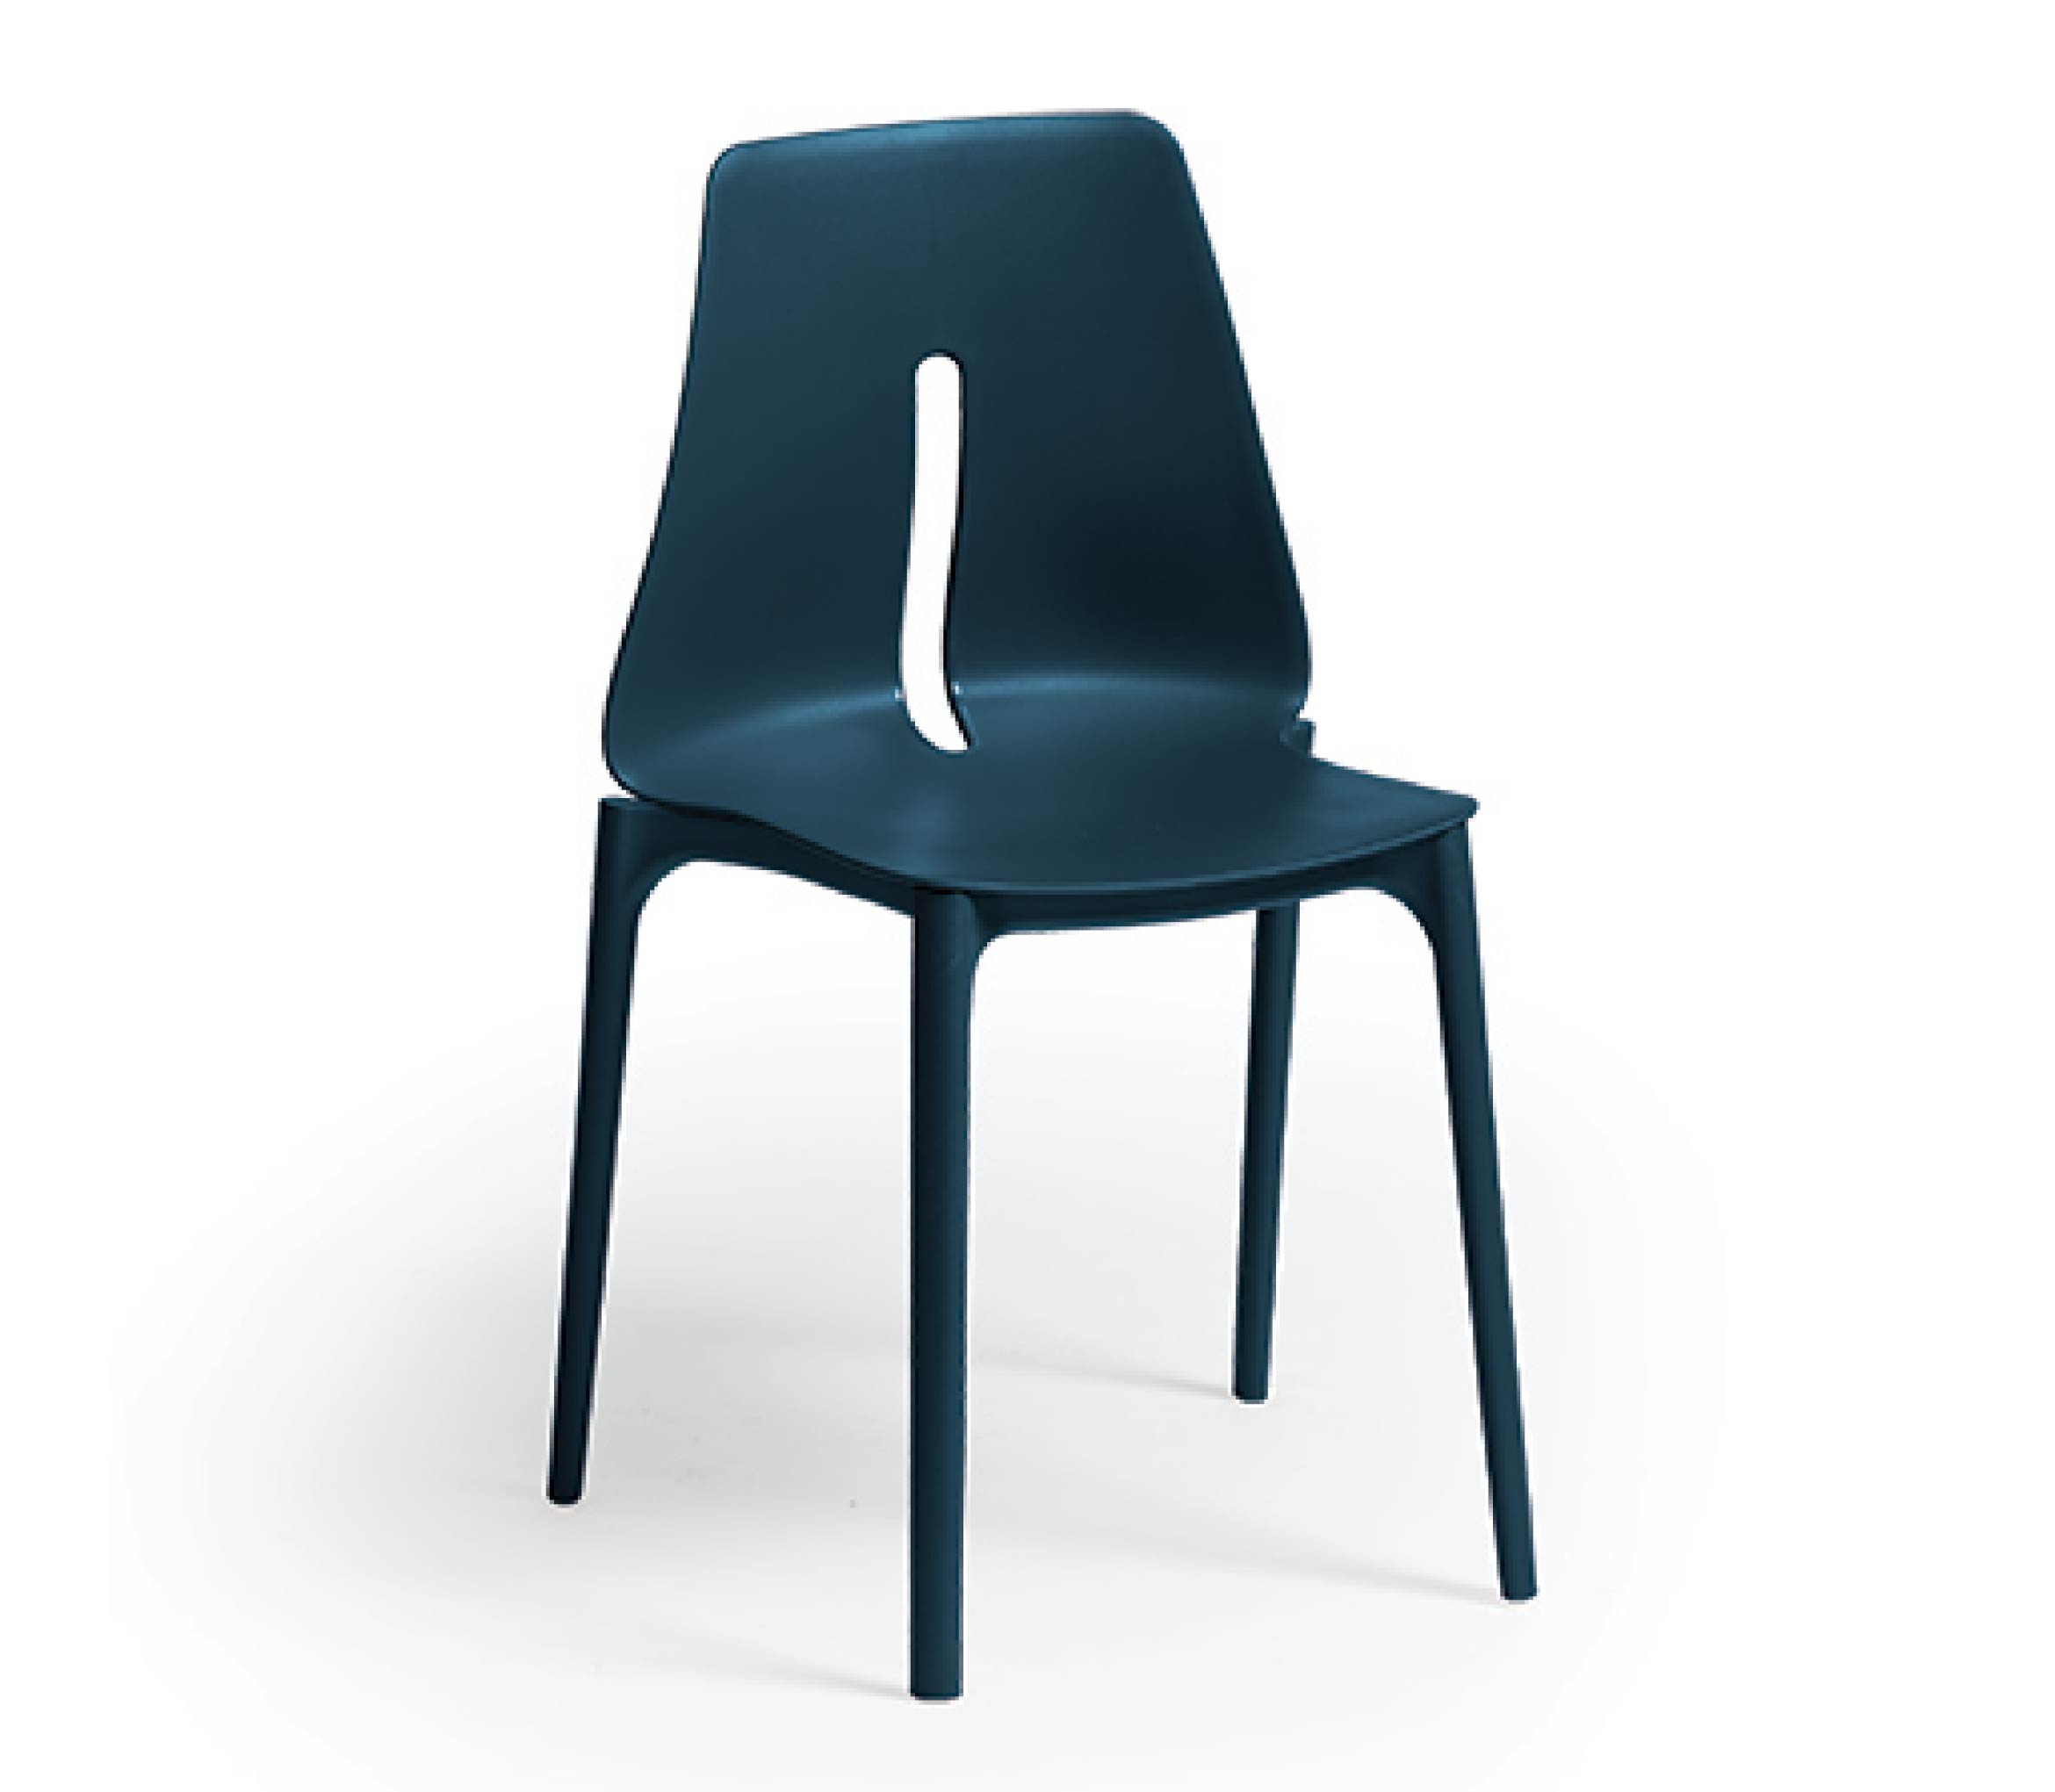 4_TENSAI_FURNITURE_OBLONG__plastic_chair_blue_color_in_white_background_613_005